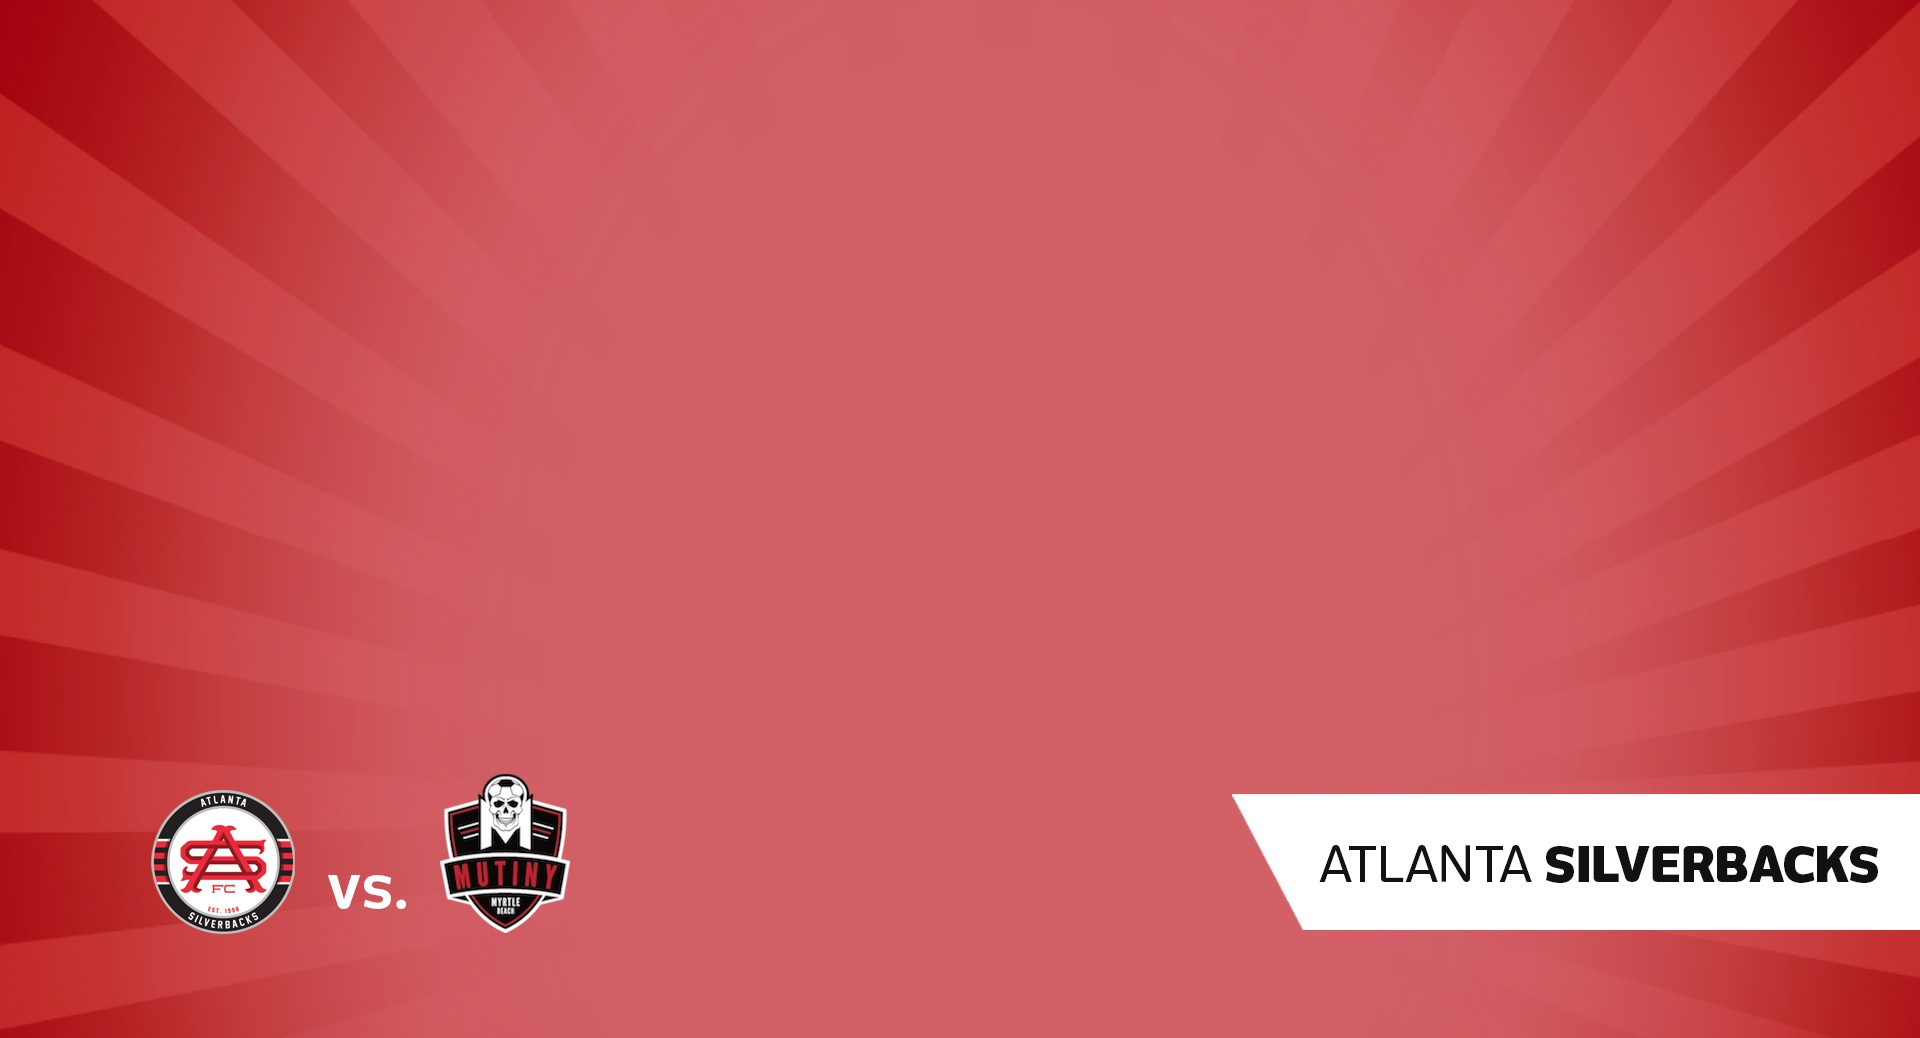 Atlanta Silverbacks vs Myrtle Beach Mutiny